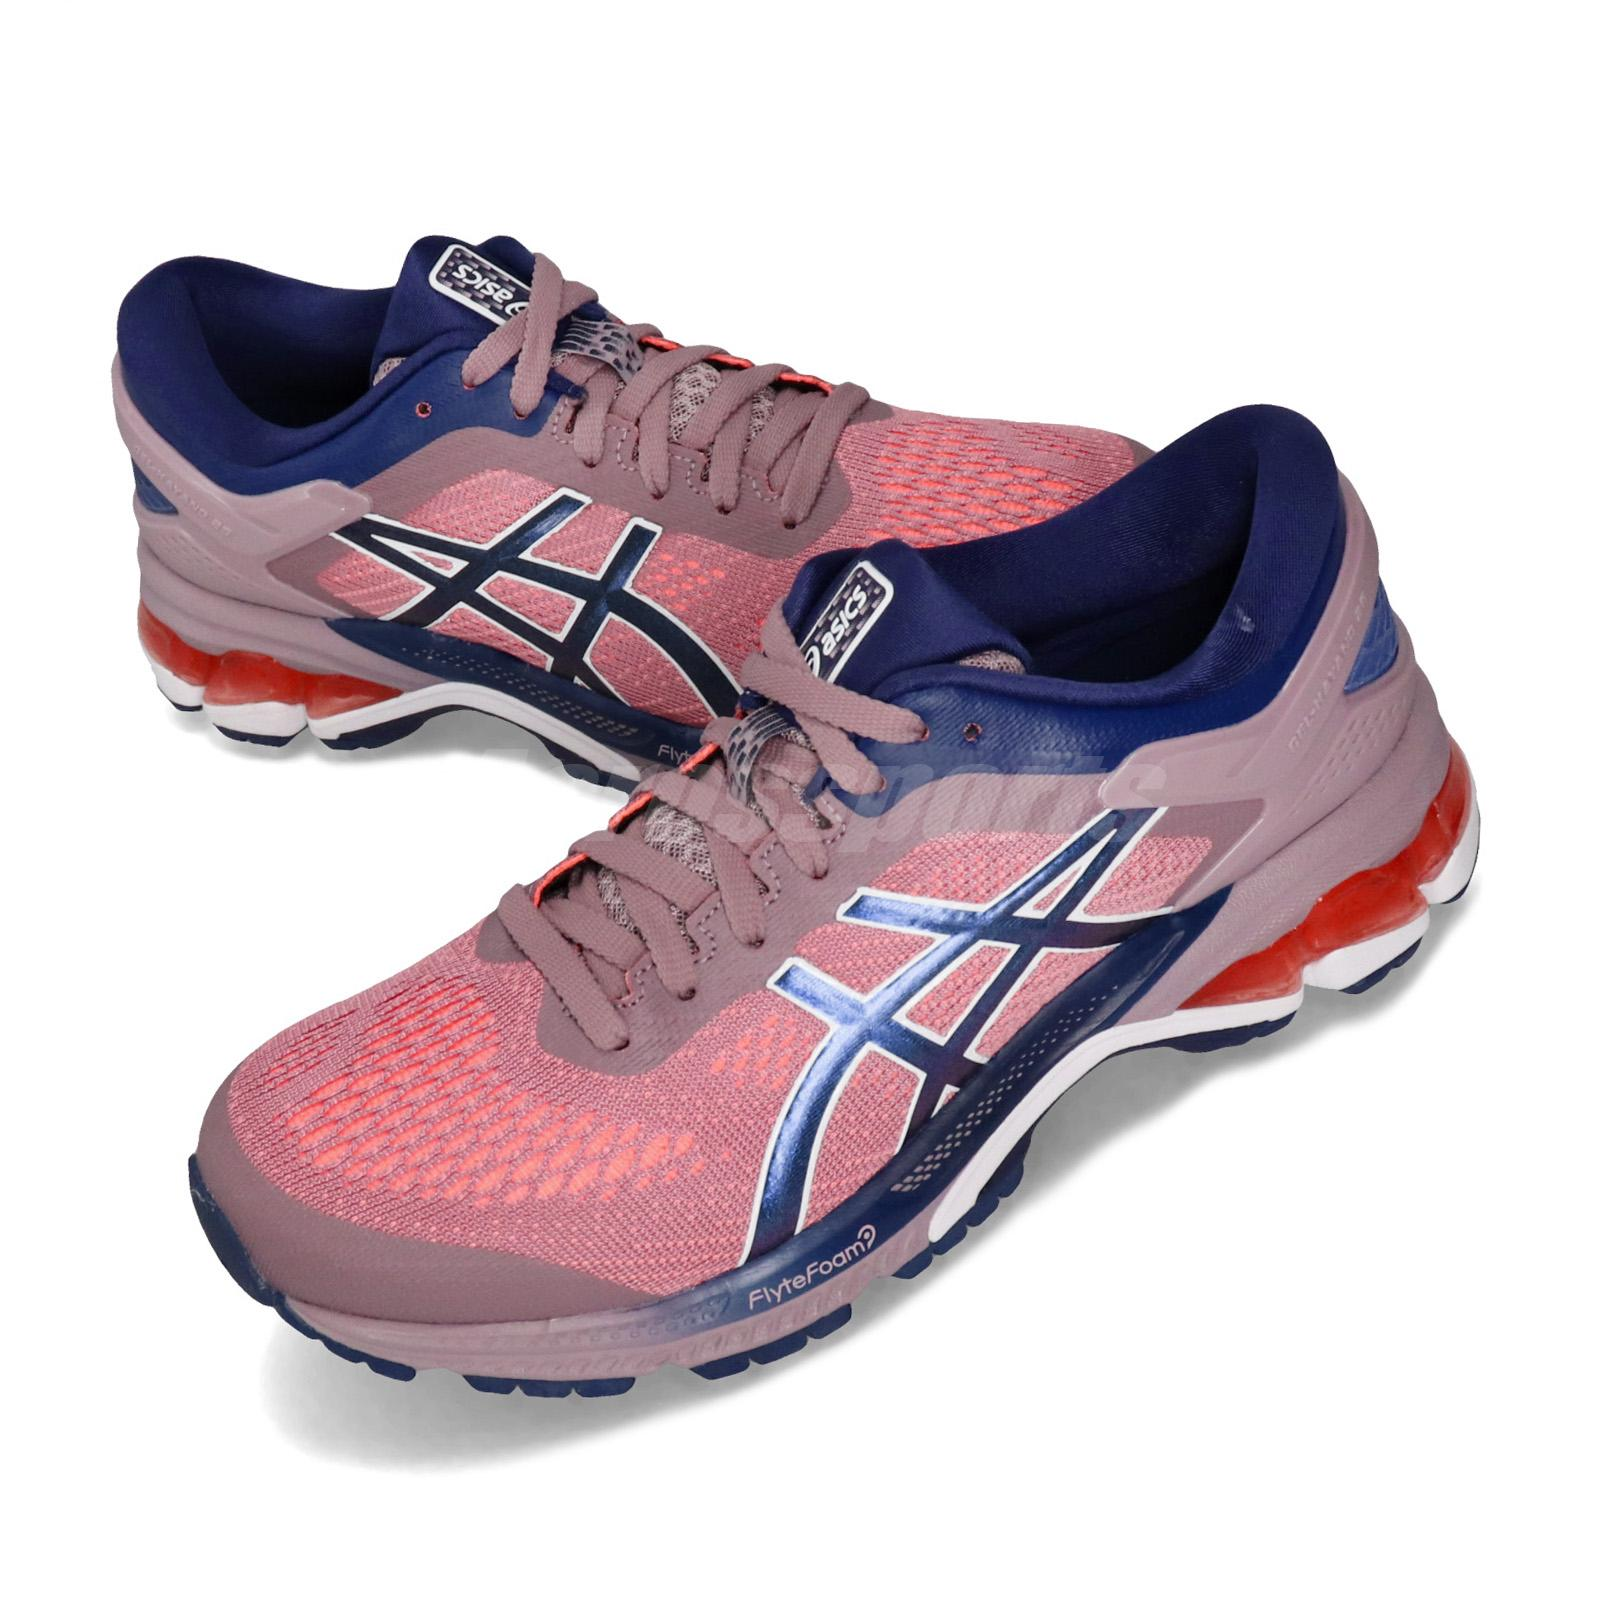 new product 70a16 88bdf Details about Asics Gel-Kayano 26 Pink Navy White Women Running Shoes  Sneakers 1012A457-500